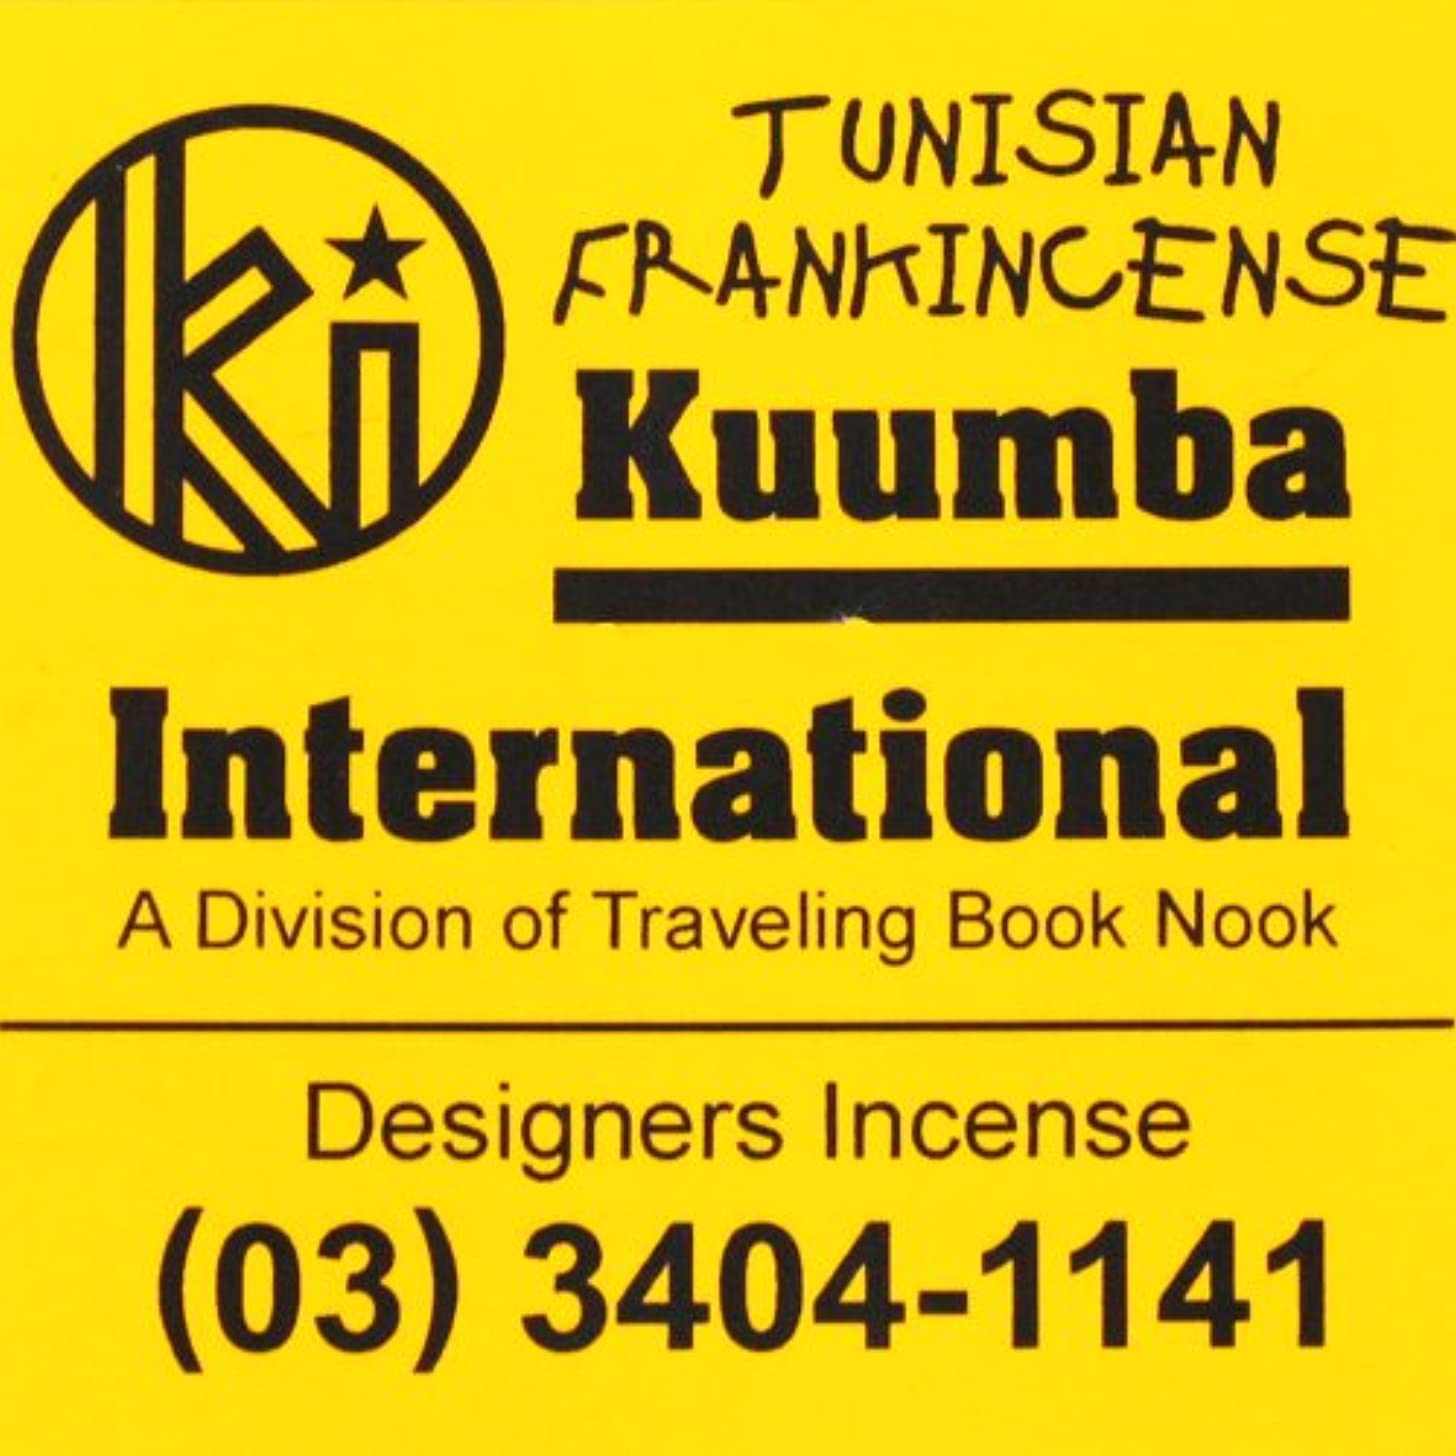 カリング暗くする会う(クンバ) KUUMBA『classic regular incense』(TUNISIAN FRANKINCENSE) (Regular size)